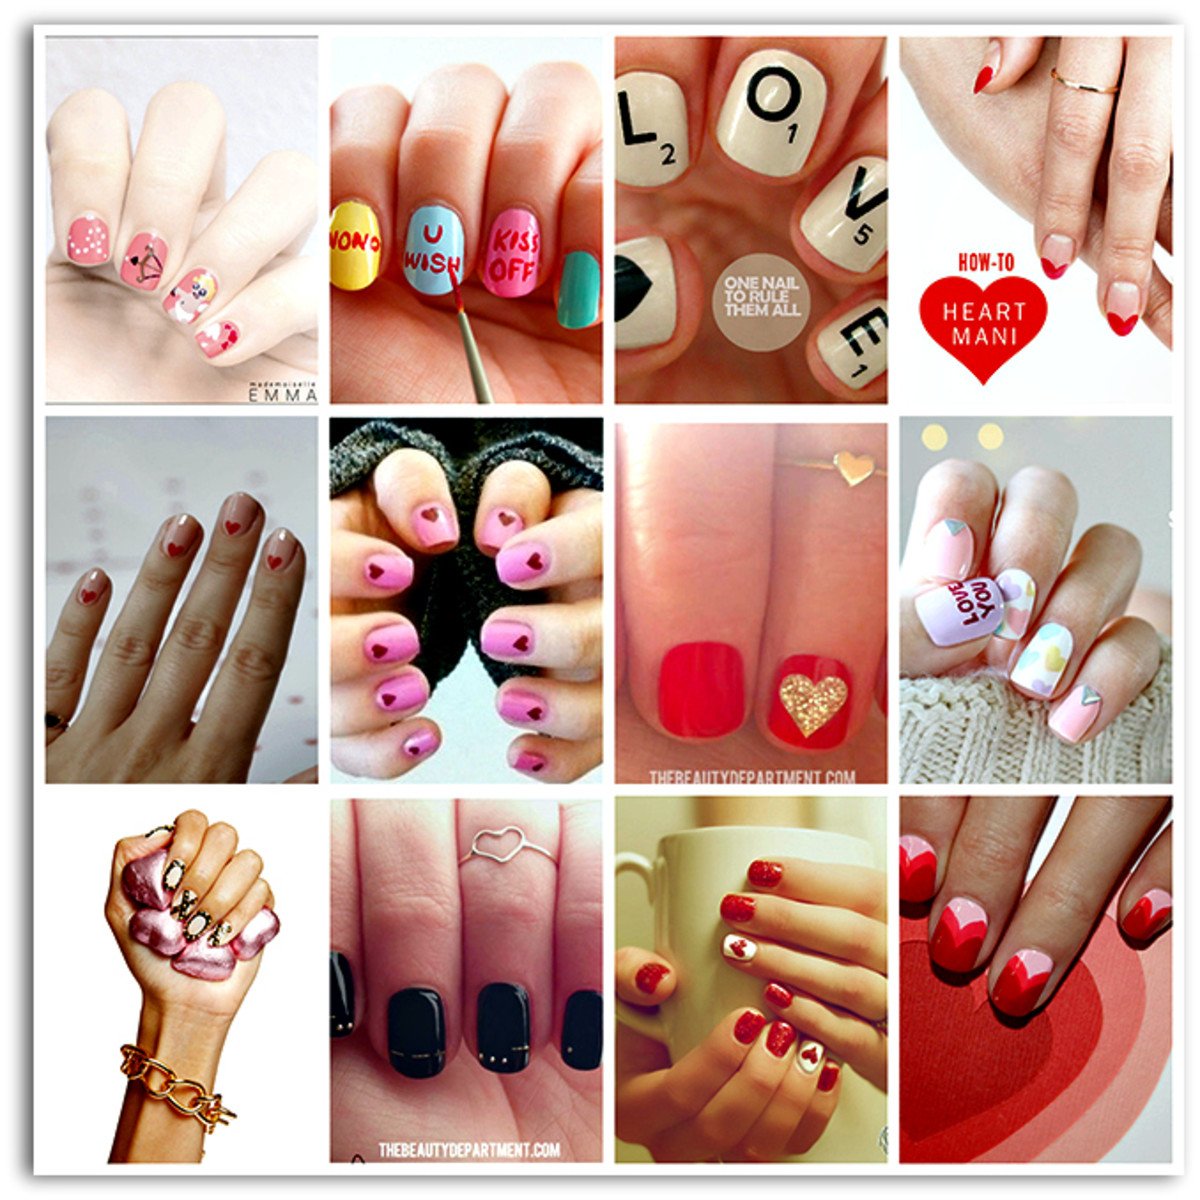 We heart nail art inspired v day manicures momtrends image placeholder title prinsesfo Image collections